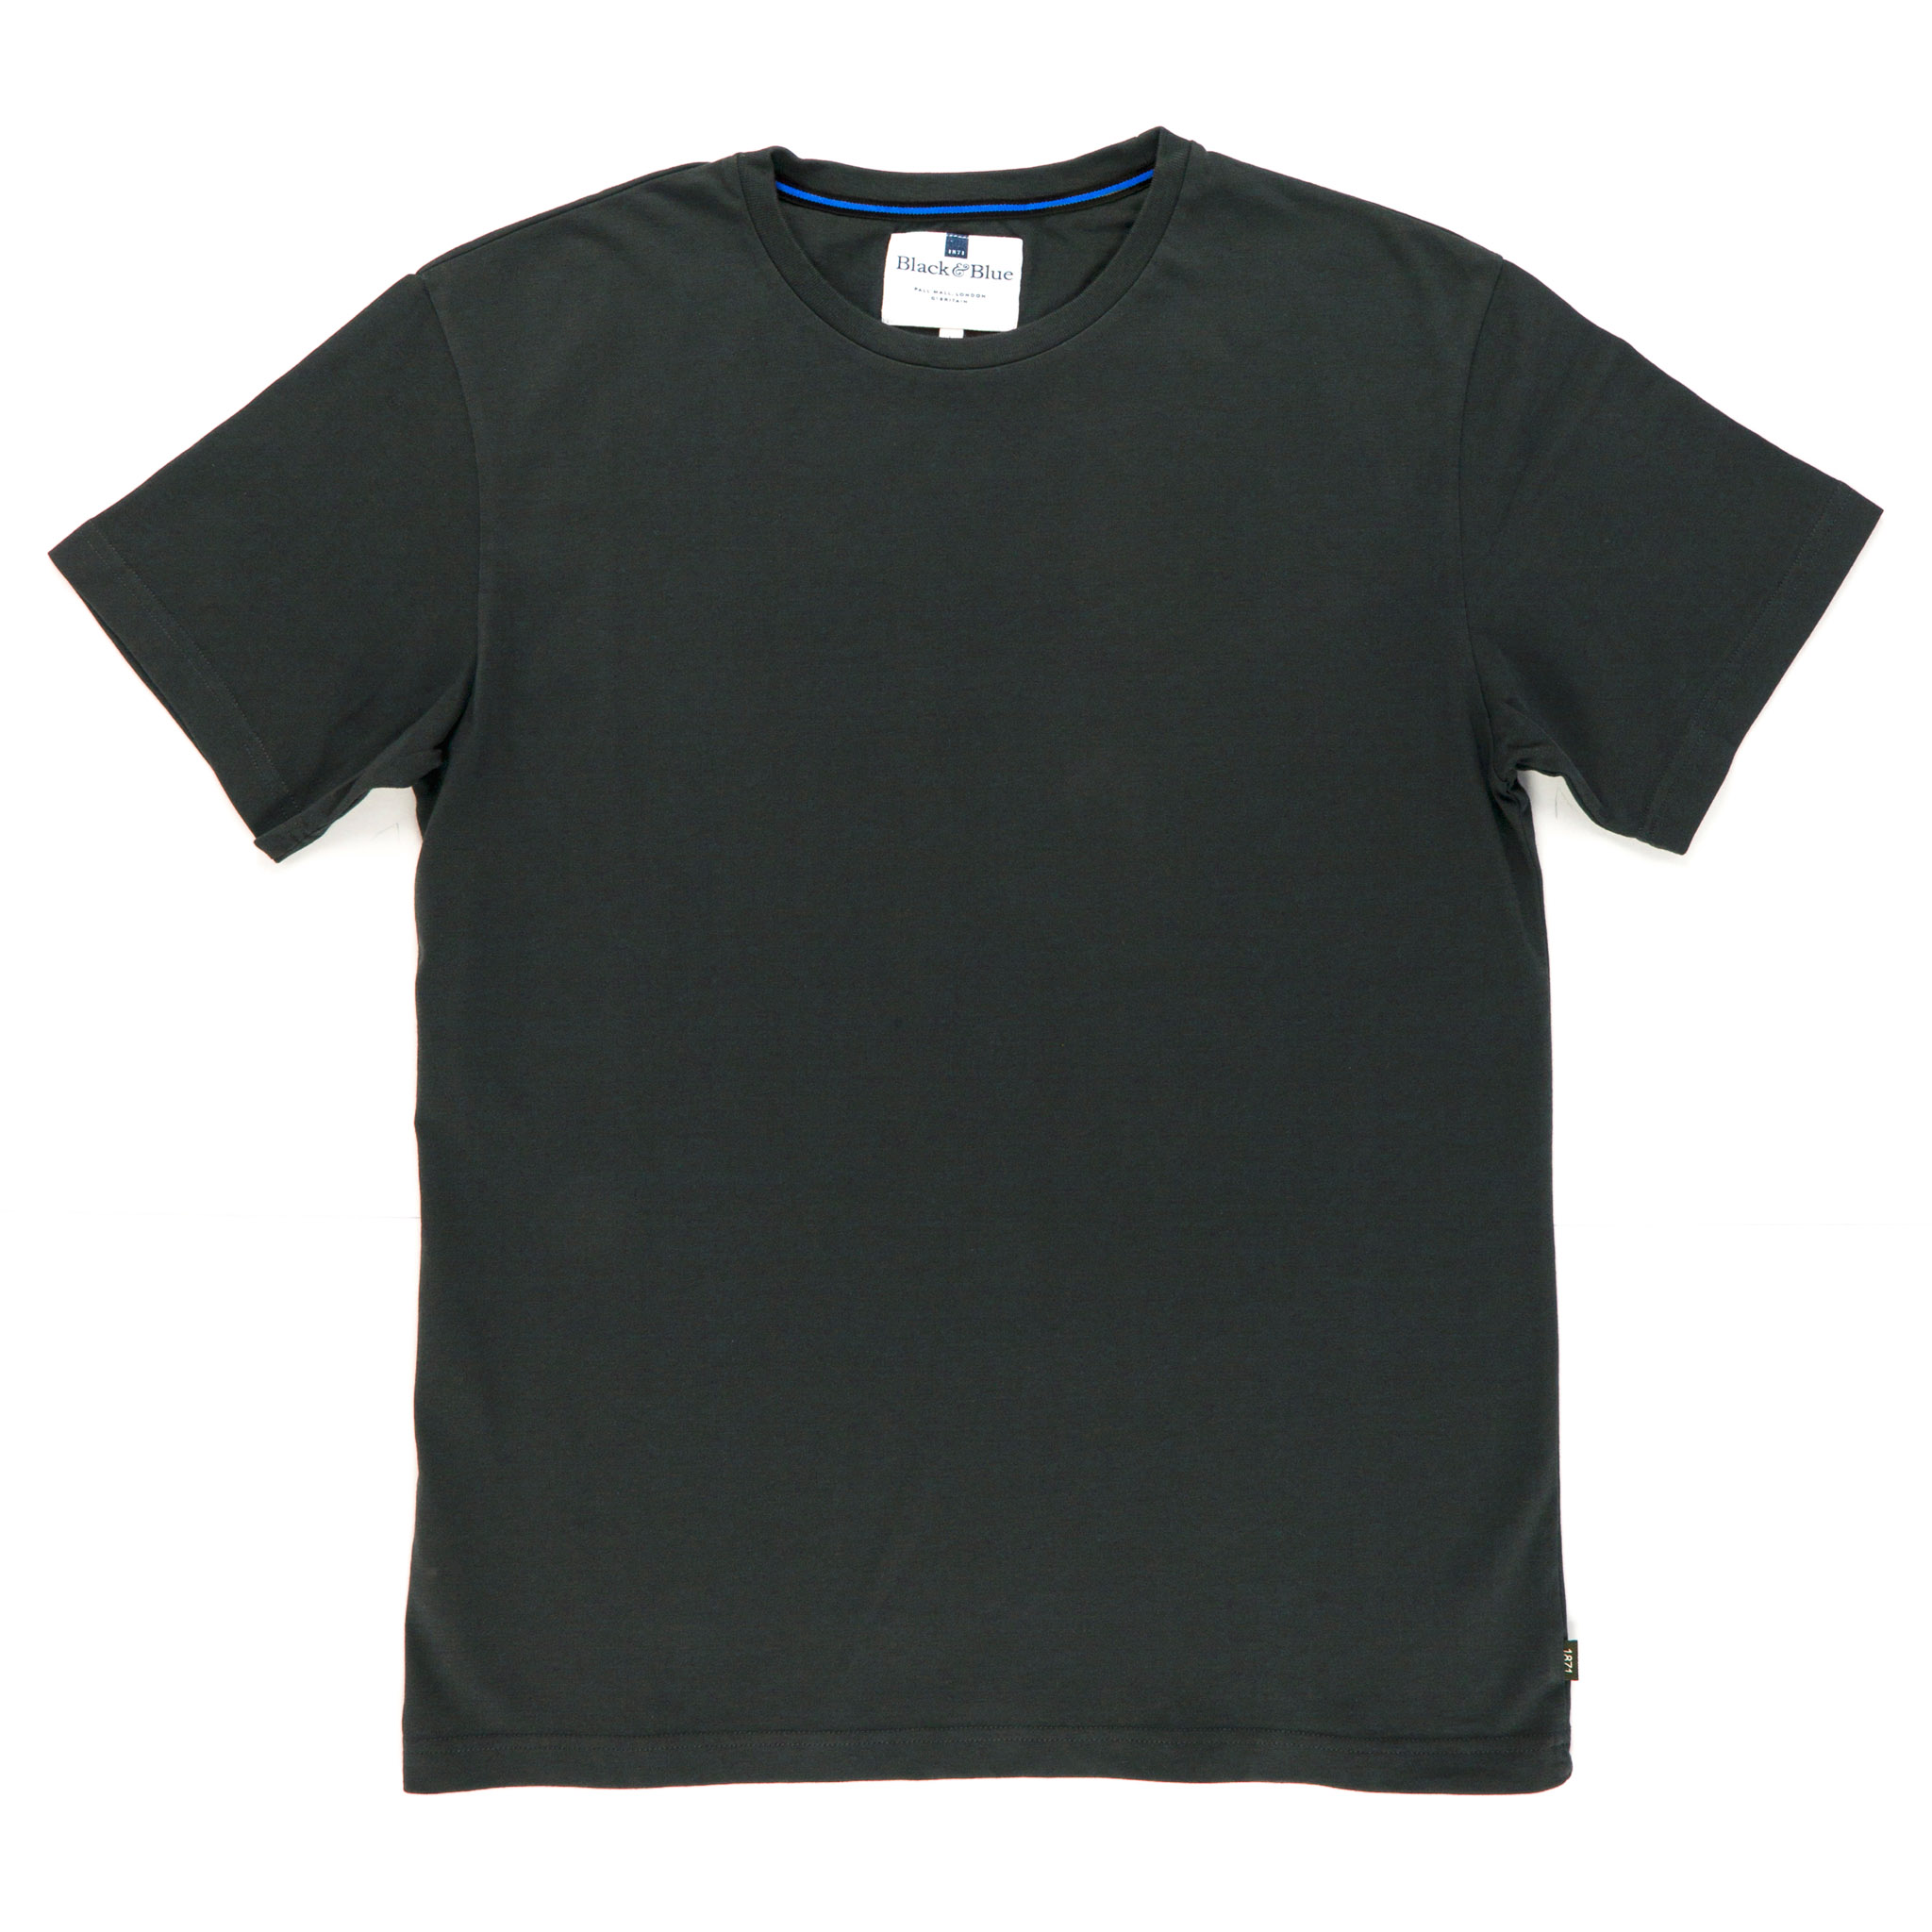 Asphalt Organic cotton T-shirt - Folded